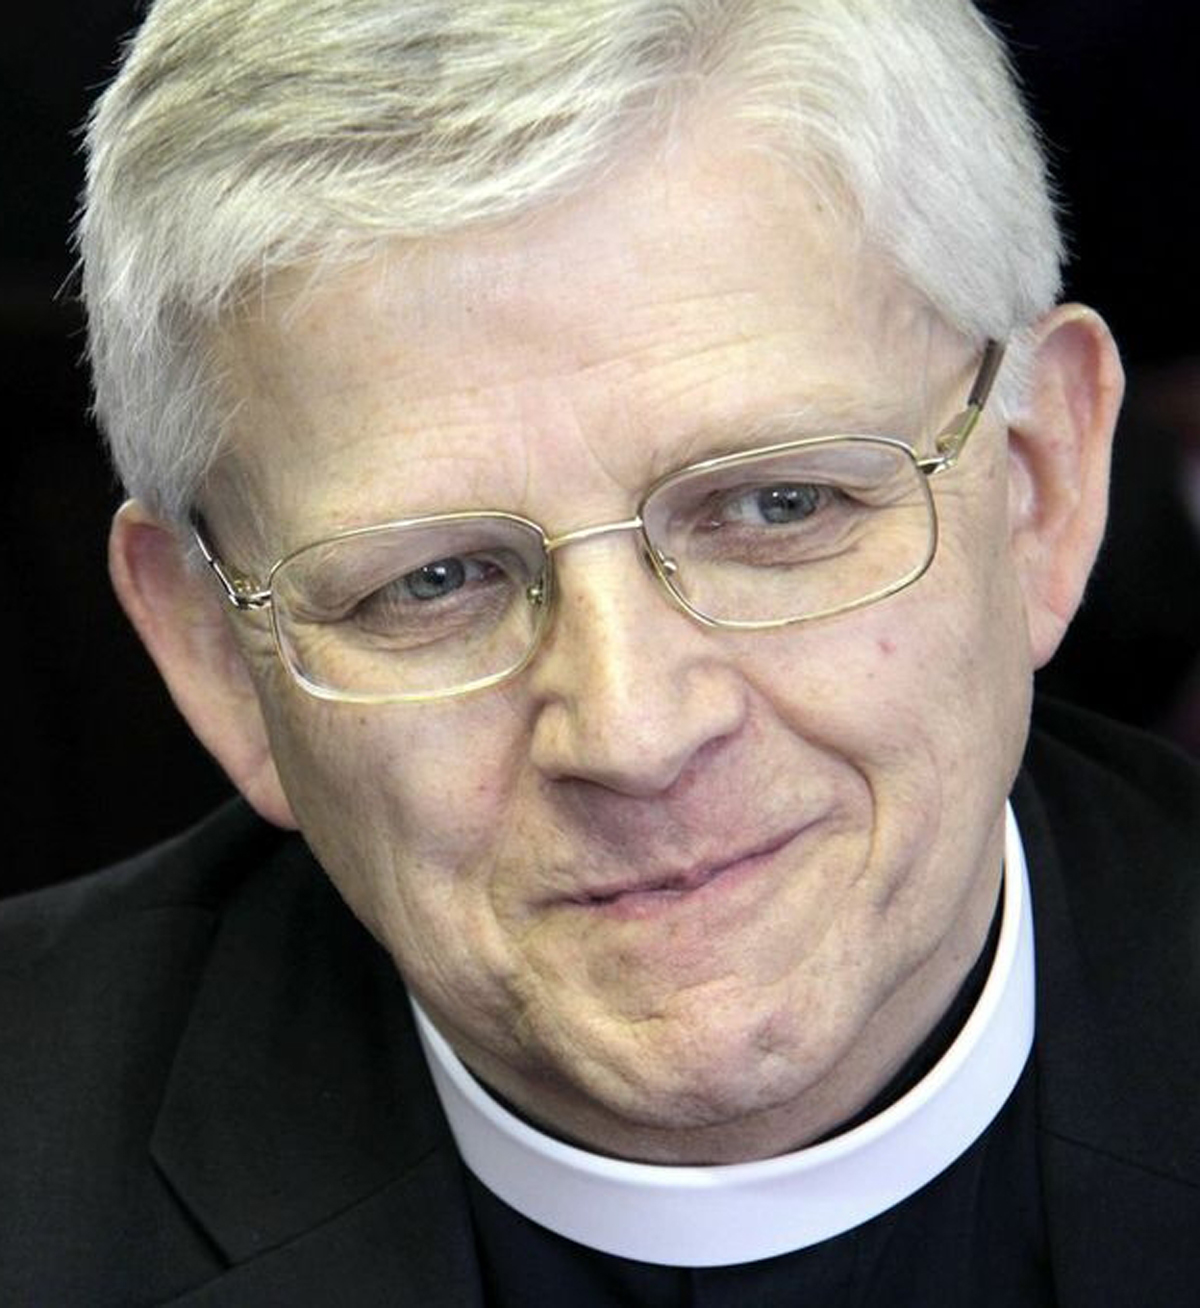 Bishop of Blackburn Julian welcomes new parishes to diocese